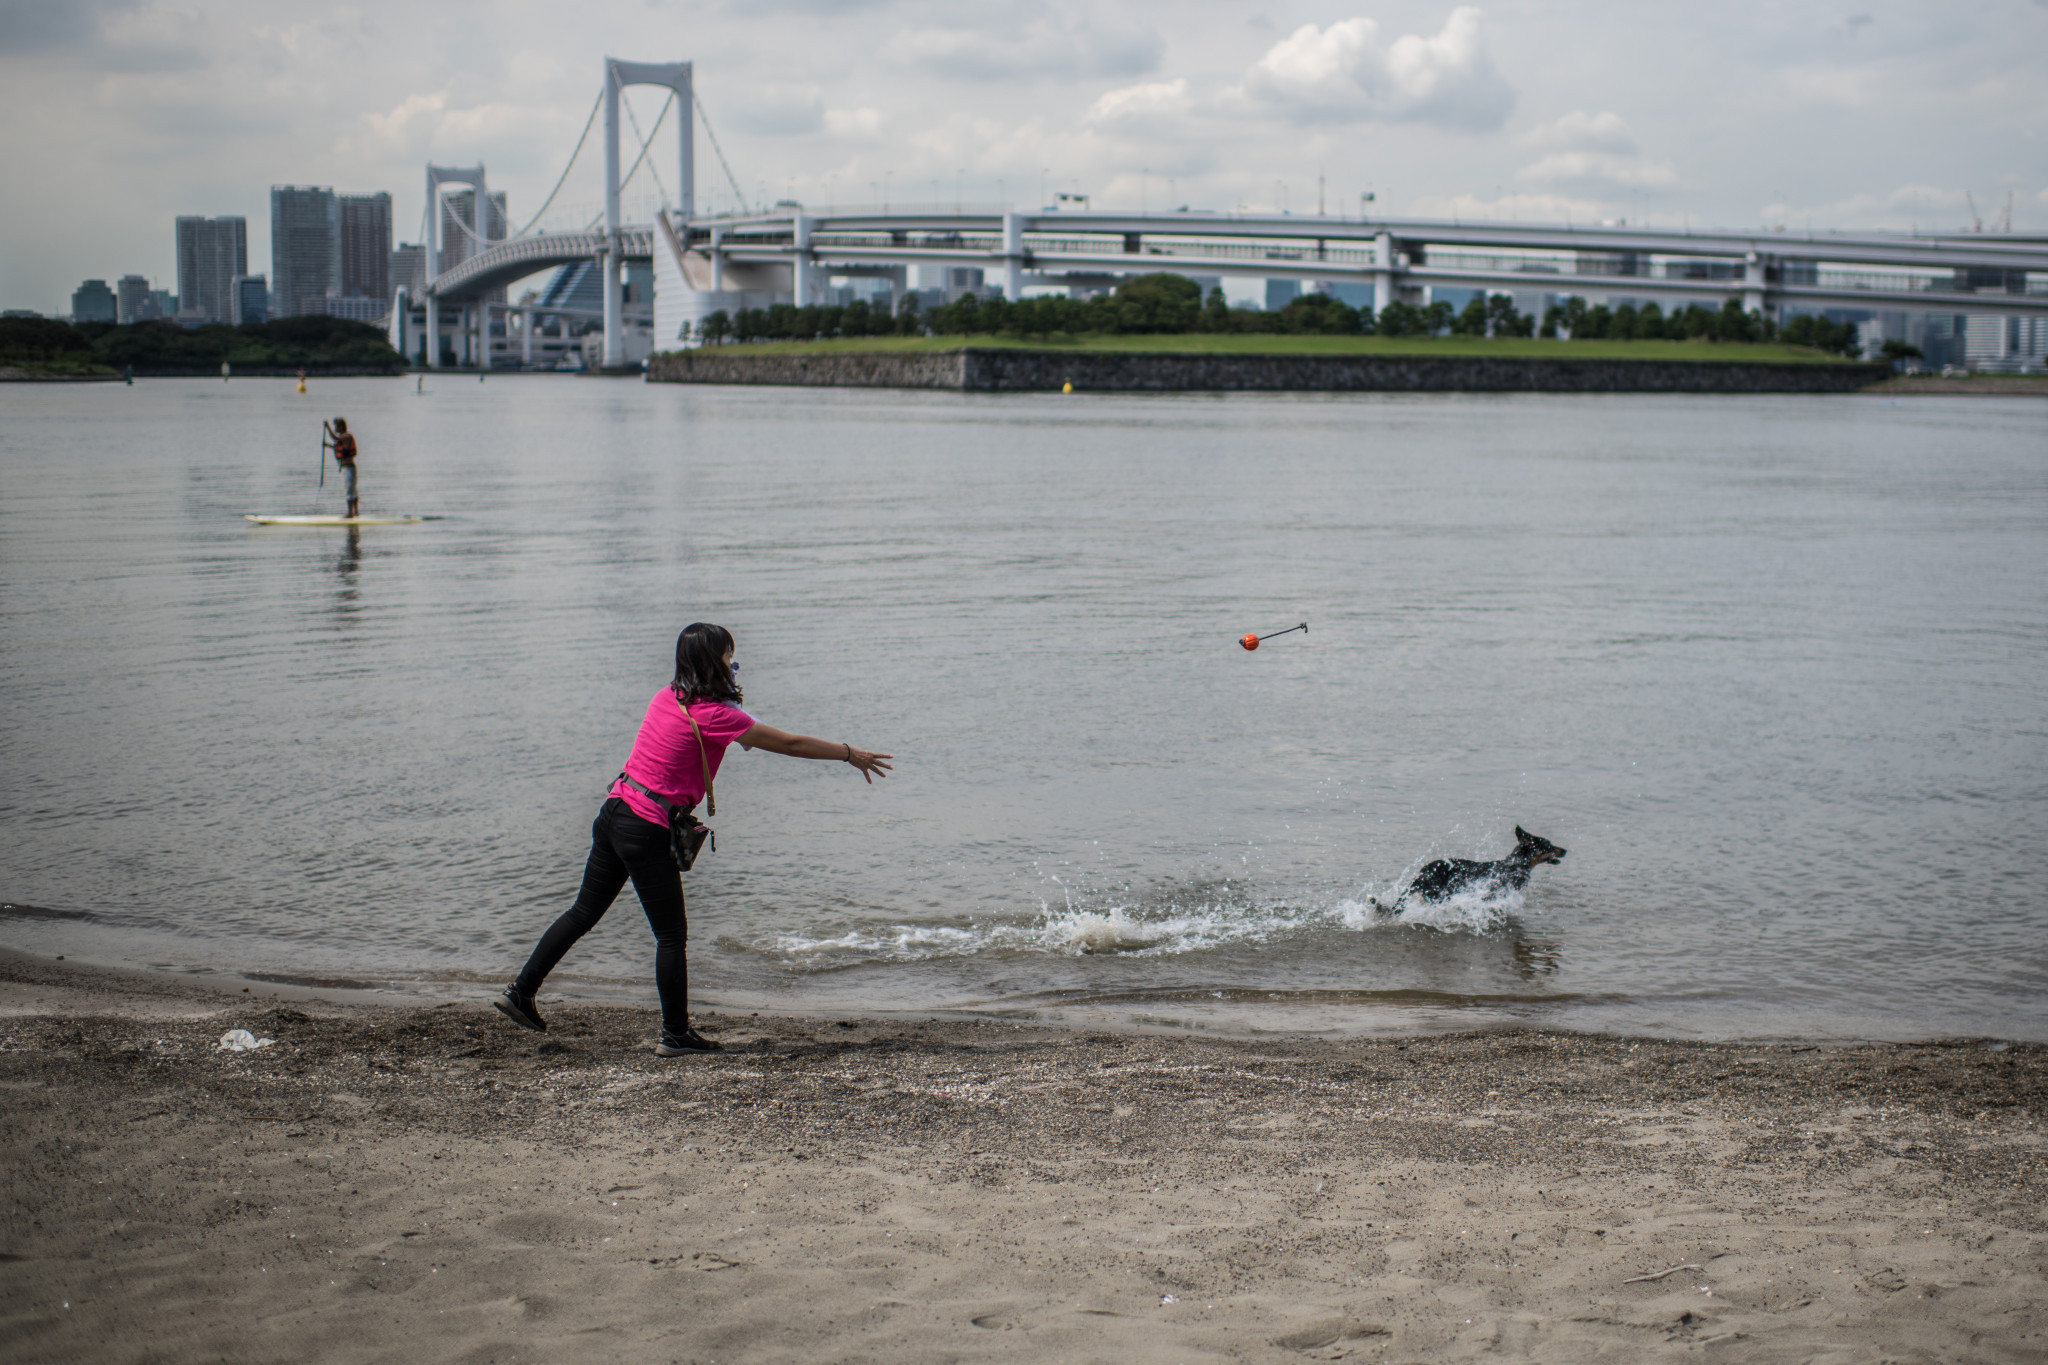 Tokyo 2020 will be keeping a close eye on the water quality during tomorrow's test event ©Getty Images